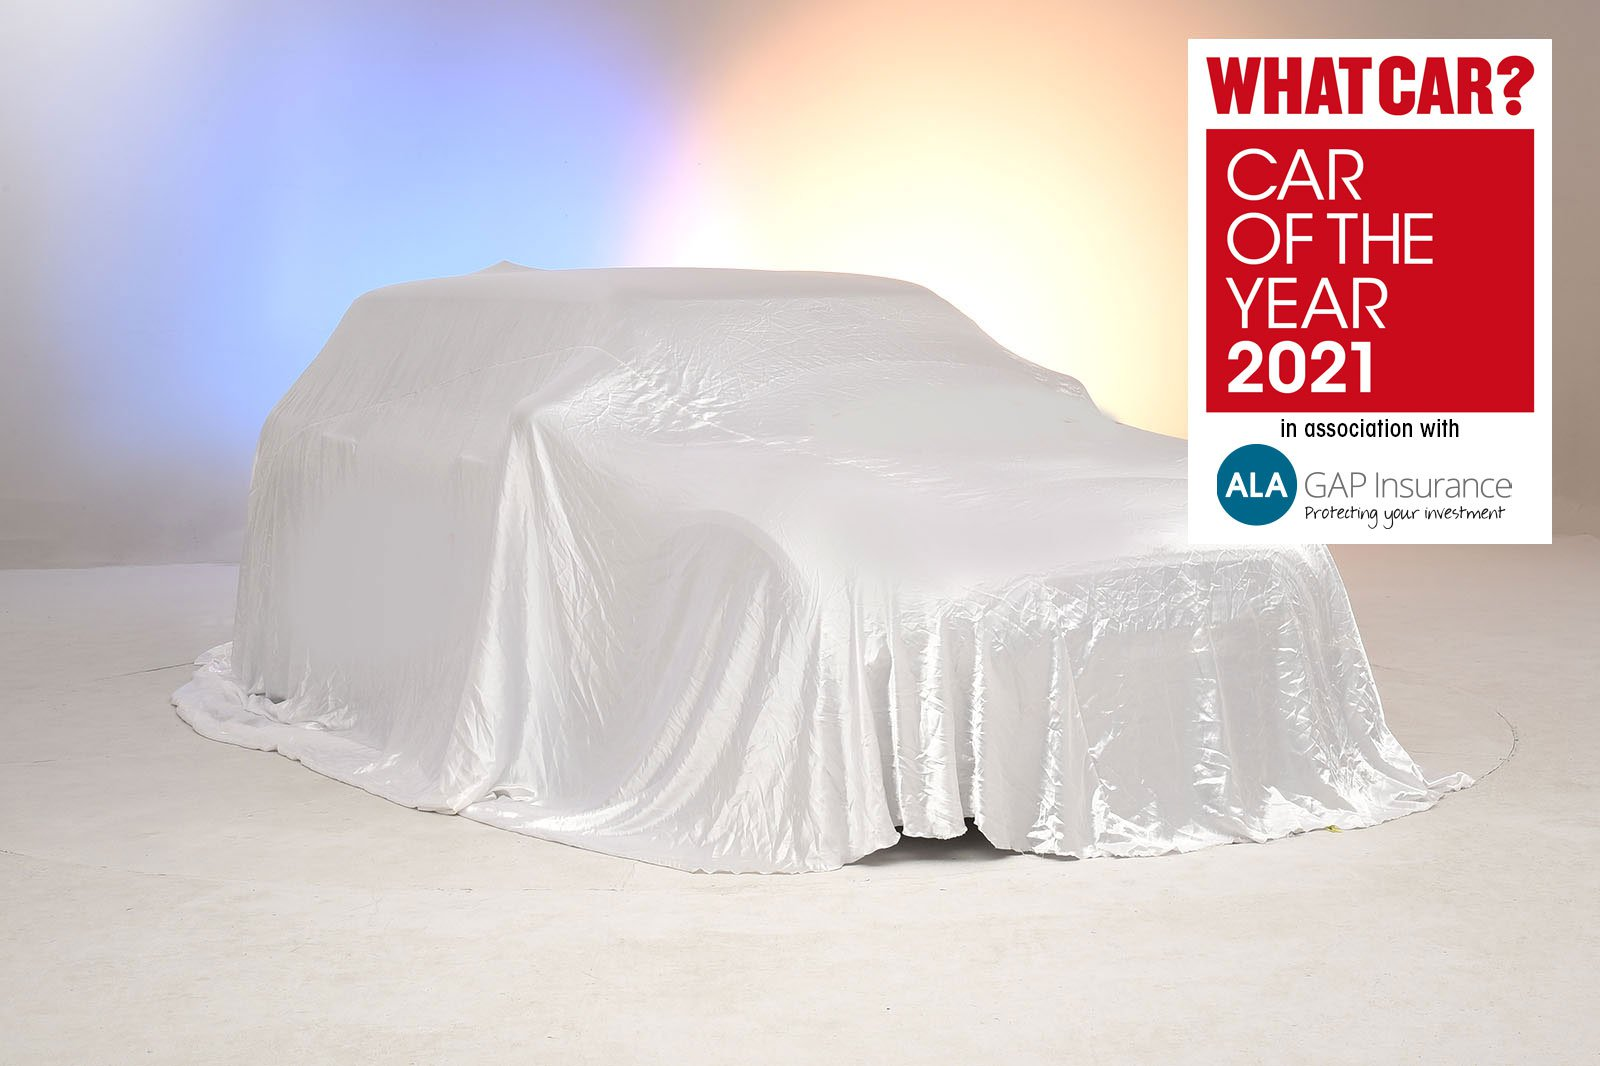 What Car? Car of the Year 2021